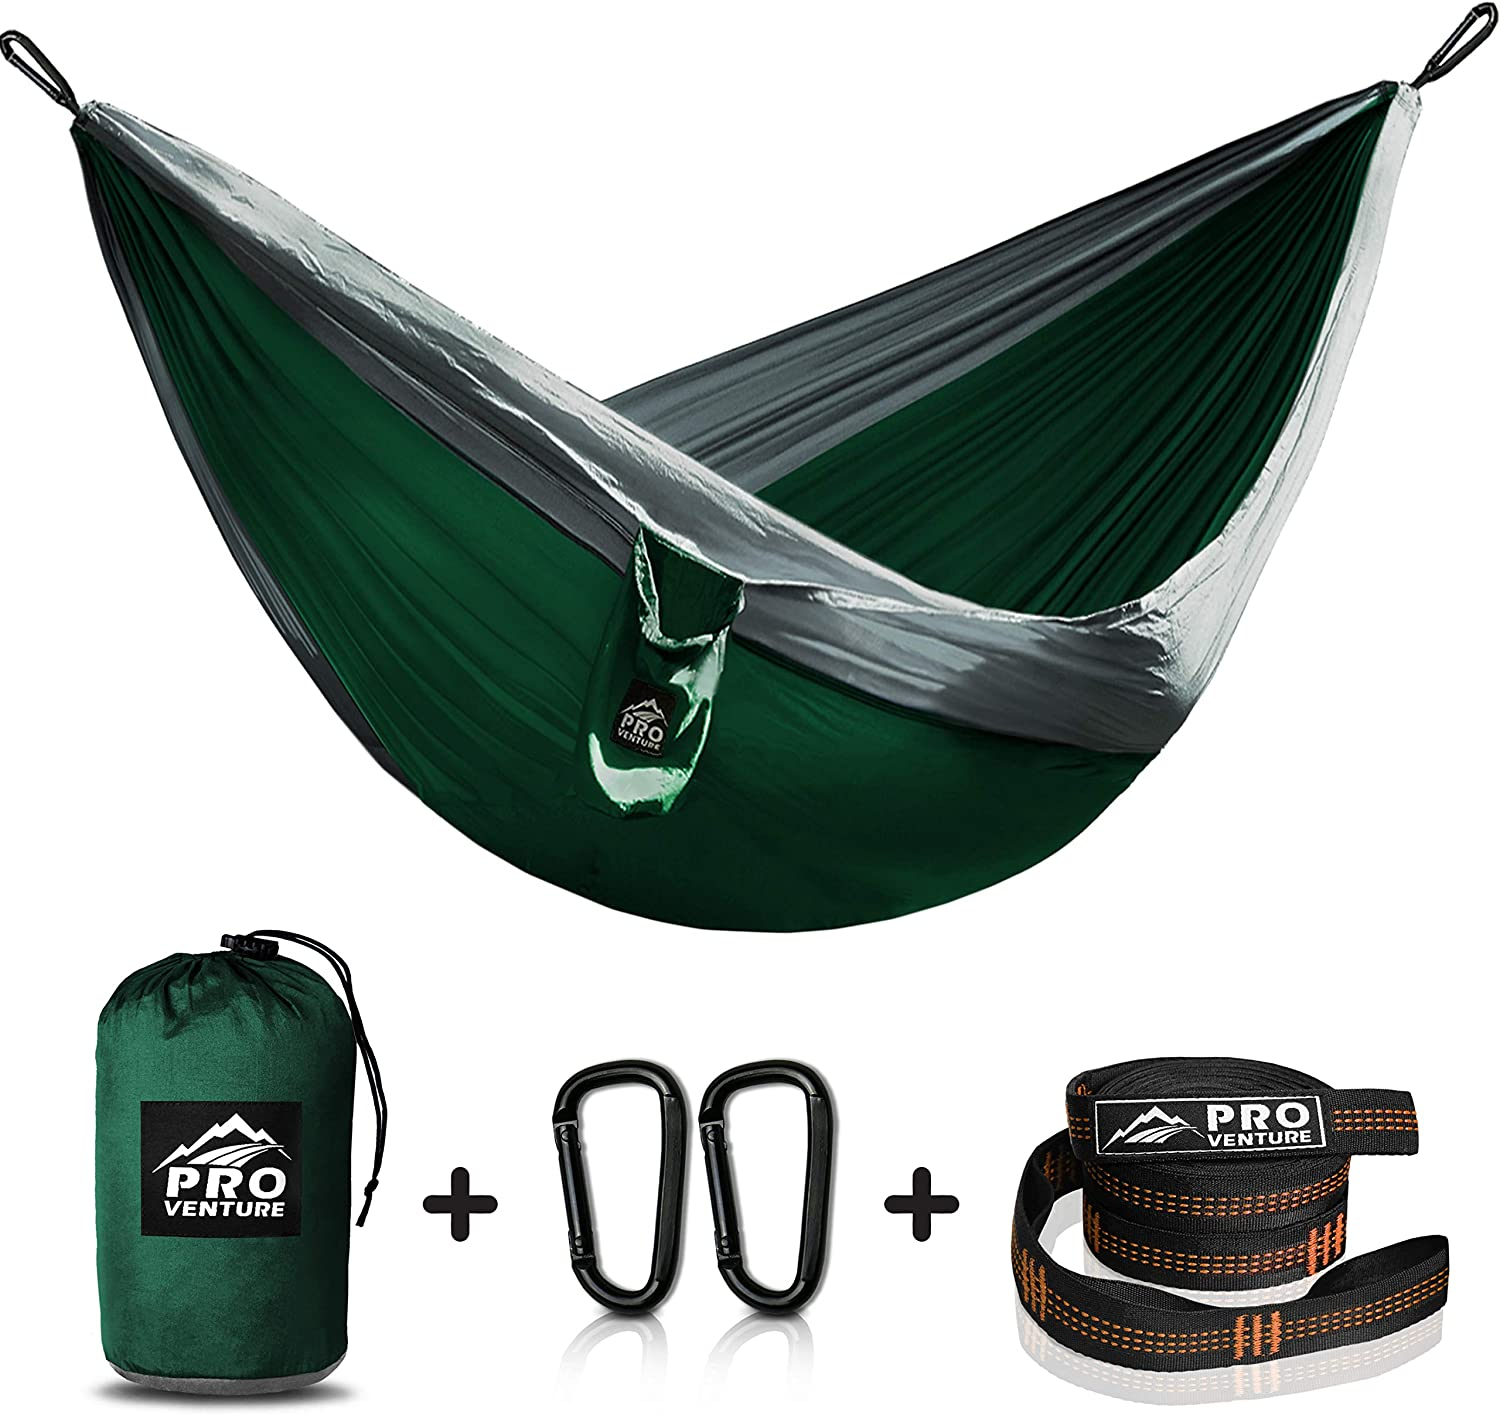 Hammocks With Free Premium Straps Carabiners Backpacker Approved And Ready For Adventure Single Camping Hammock Lightweight And Compact Parachute Nylon Hammocks Sports Outdoors